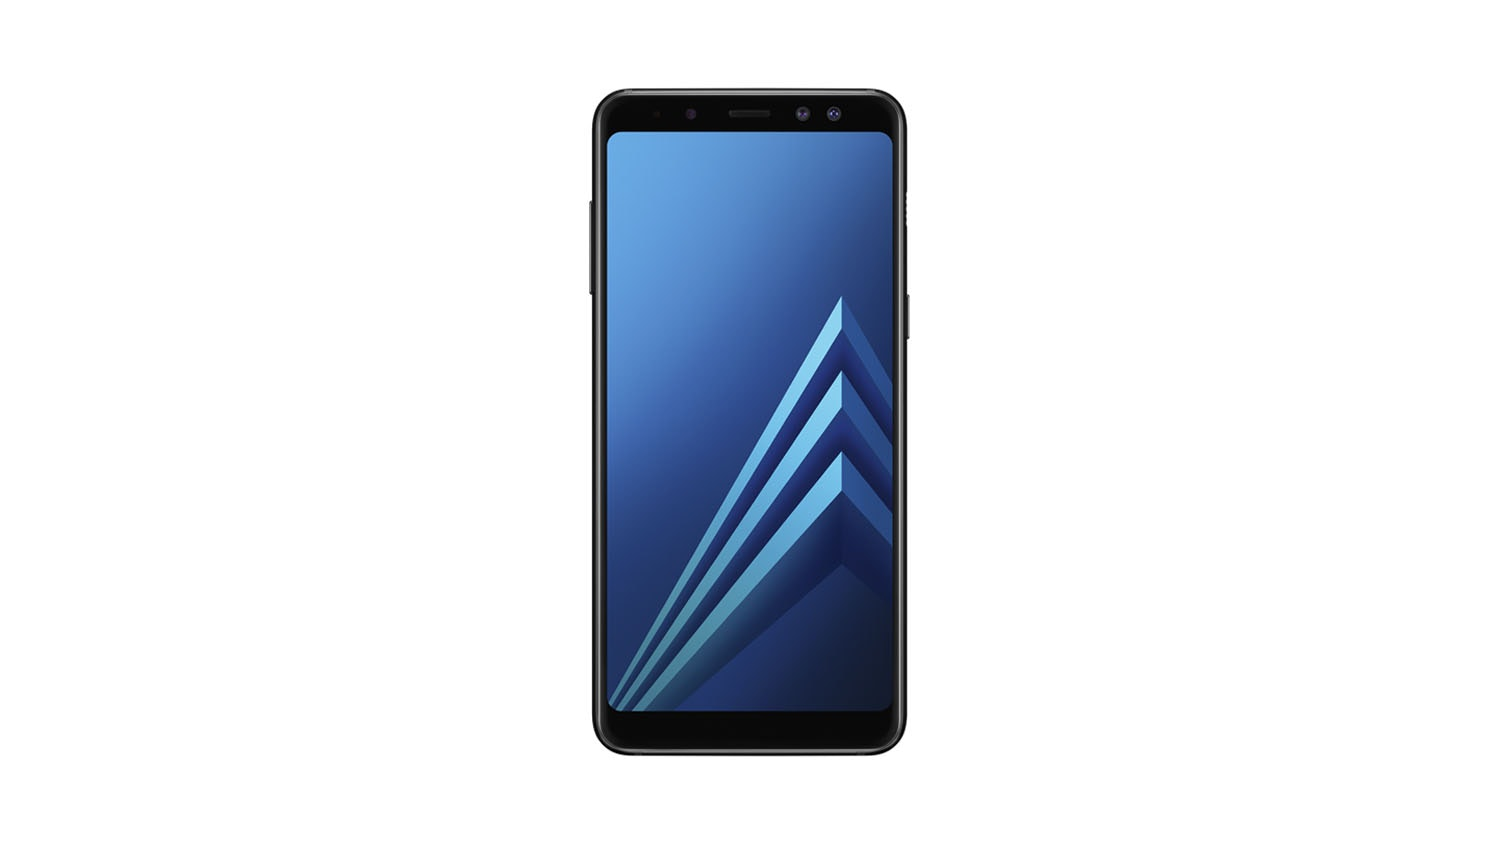 2degrees Samsung Galaxy A8 Smartphone